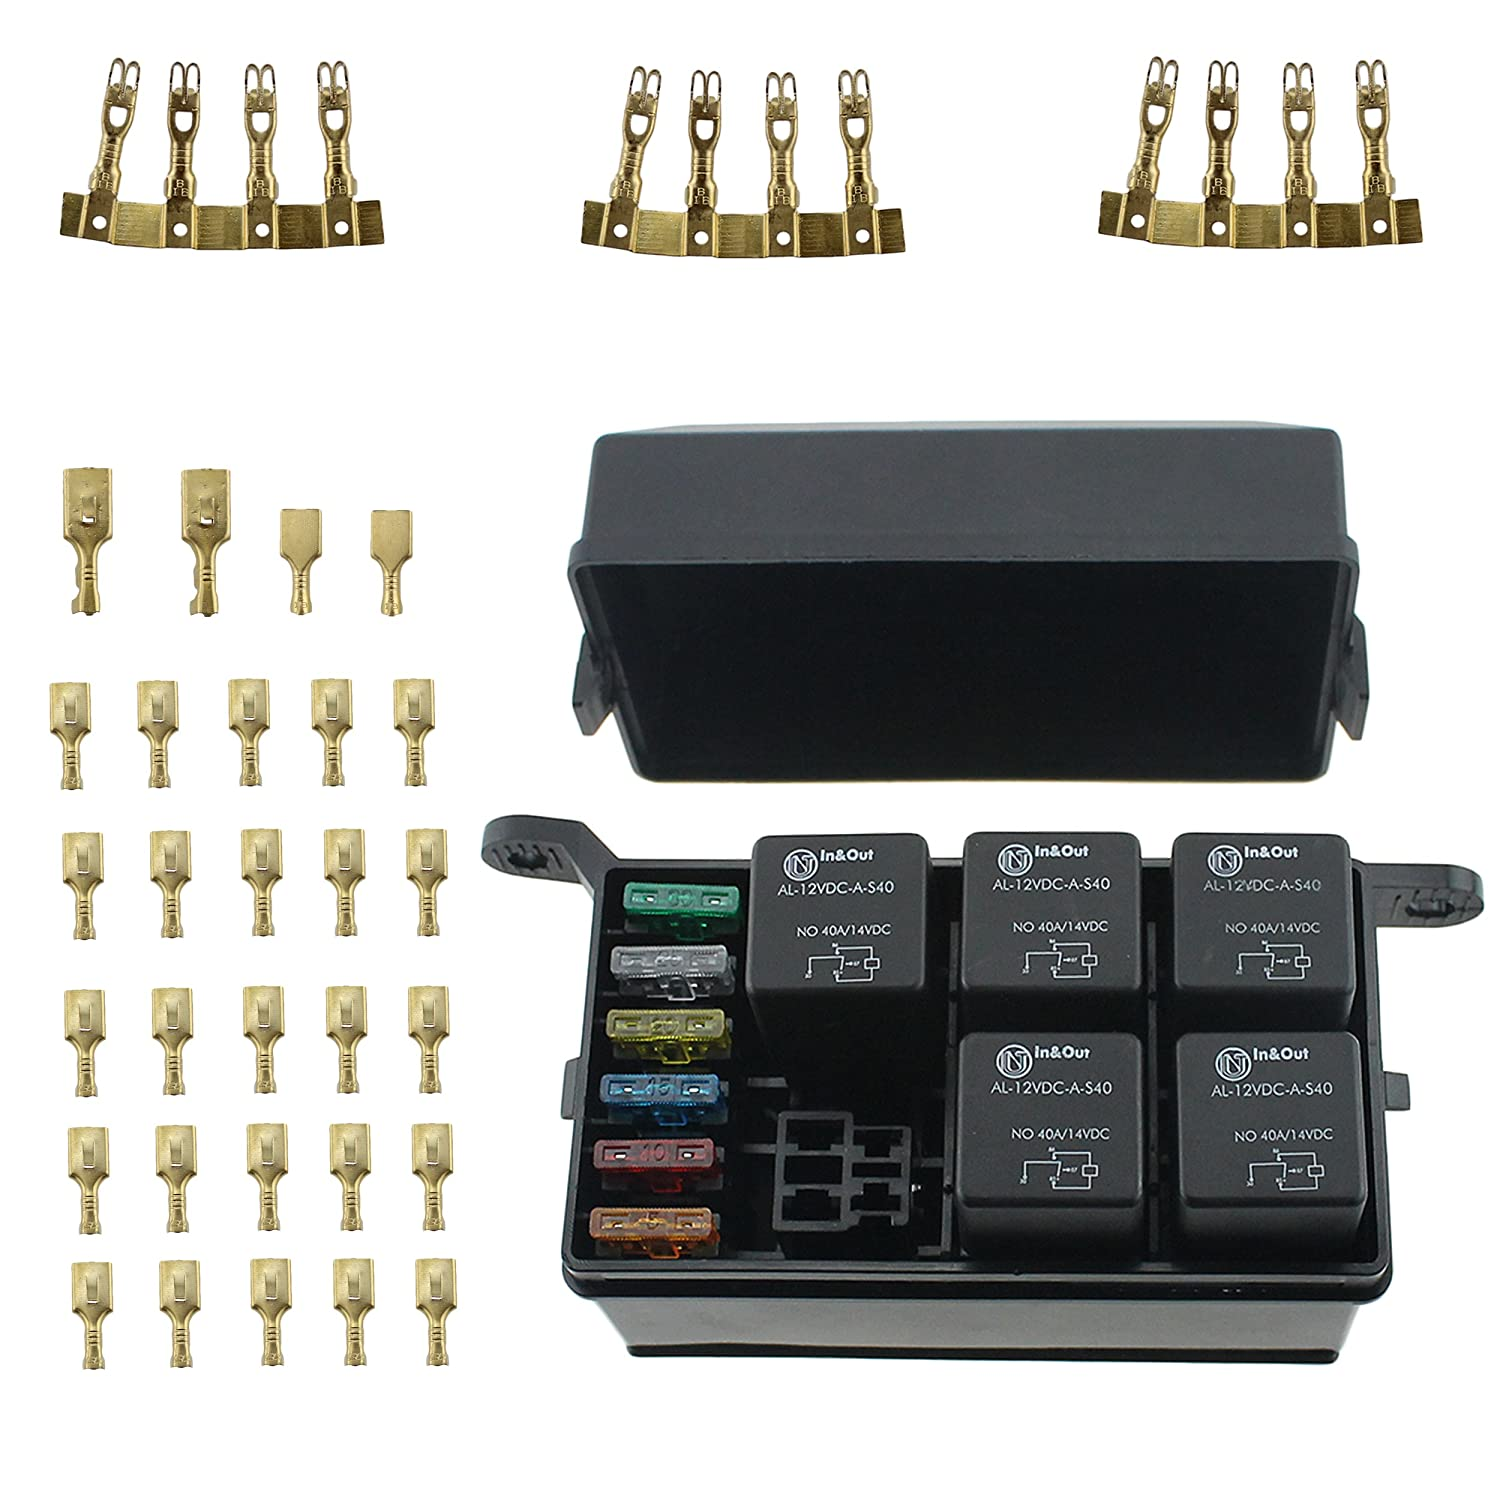 81Uj6Pmk1gL._SL1500_ amazon com fuse boxes fuses & accessories automotive  at love-stories.co